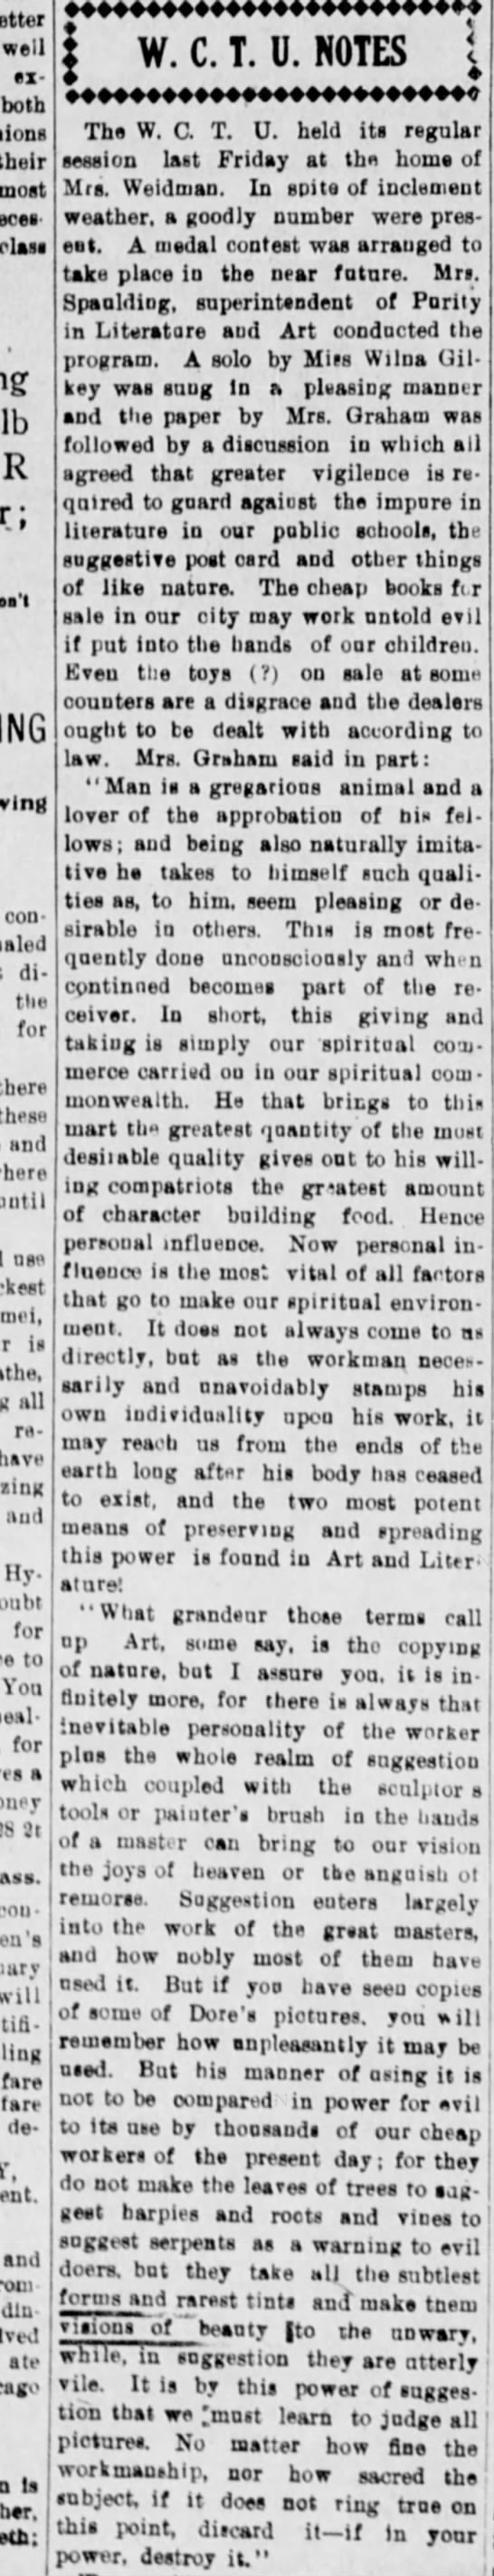 Weekly Rogue River Courier (Grants Pass, OR) 6 Mar 1908 p2 c4